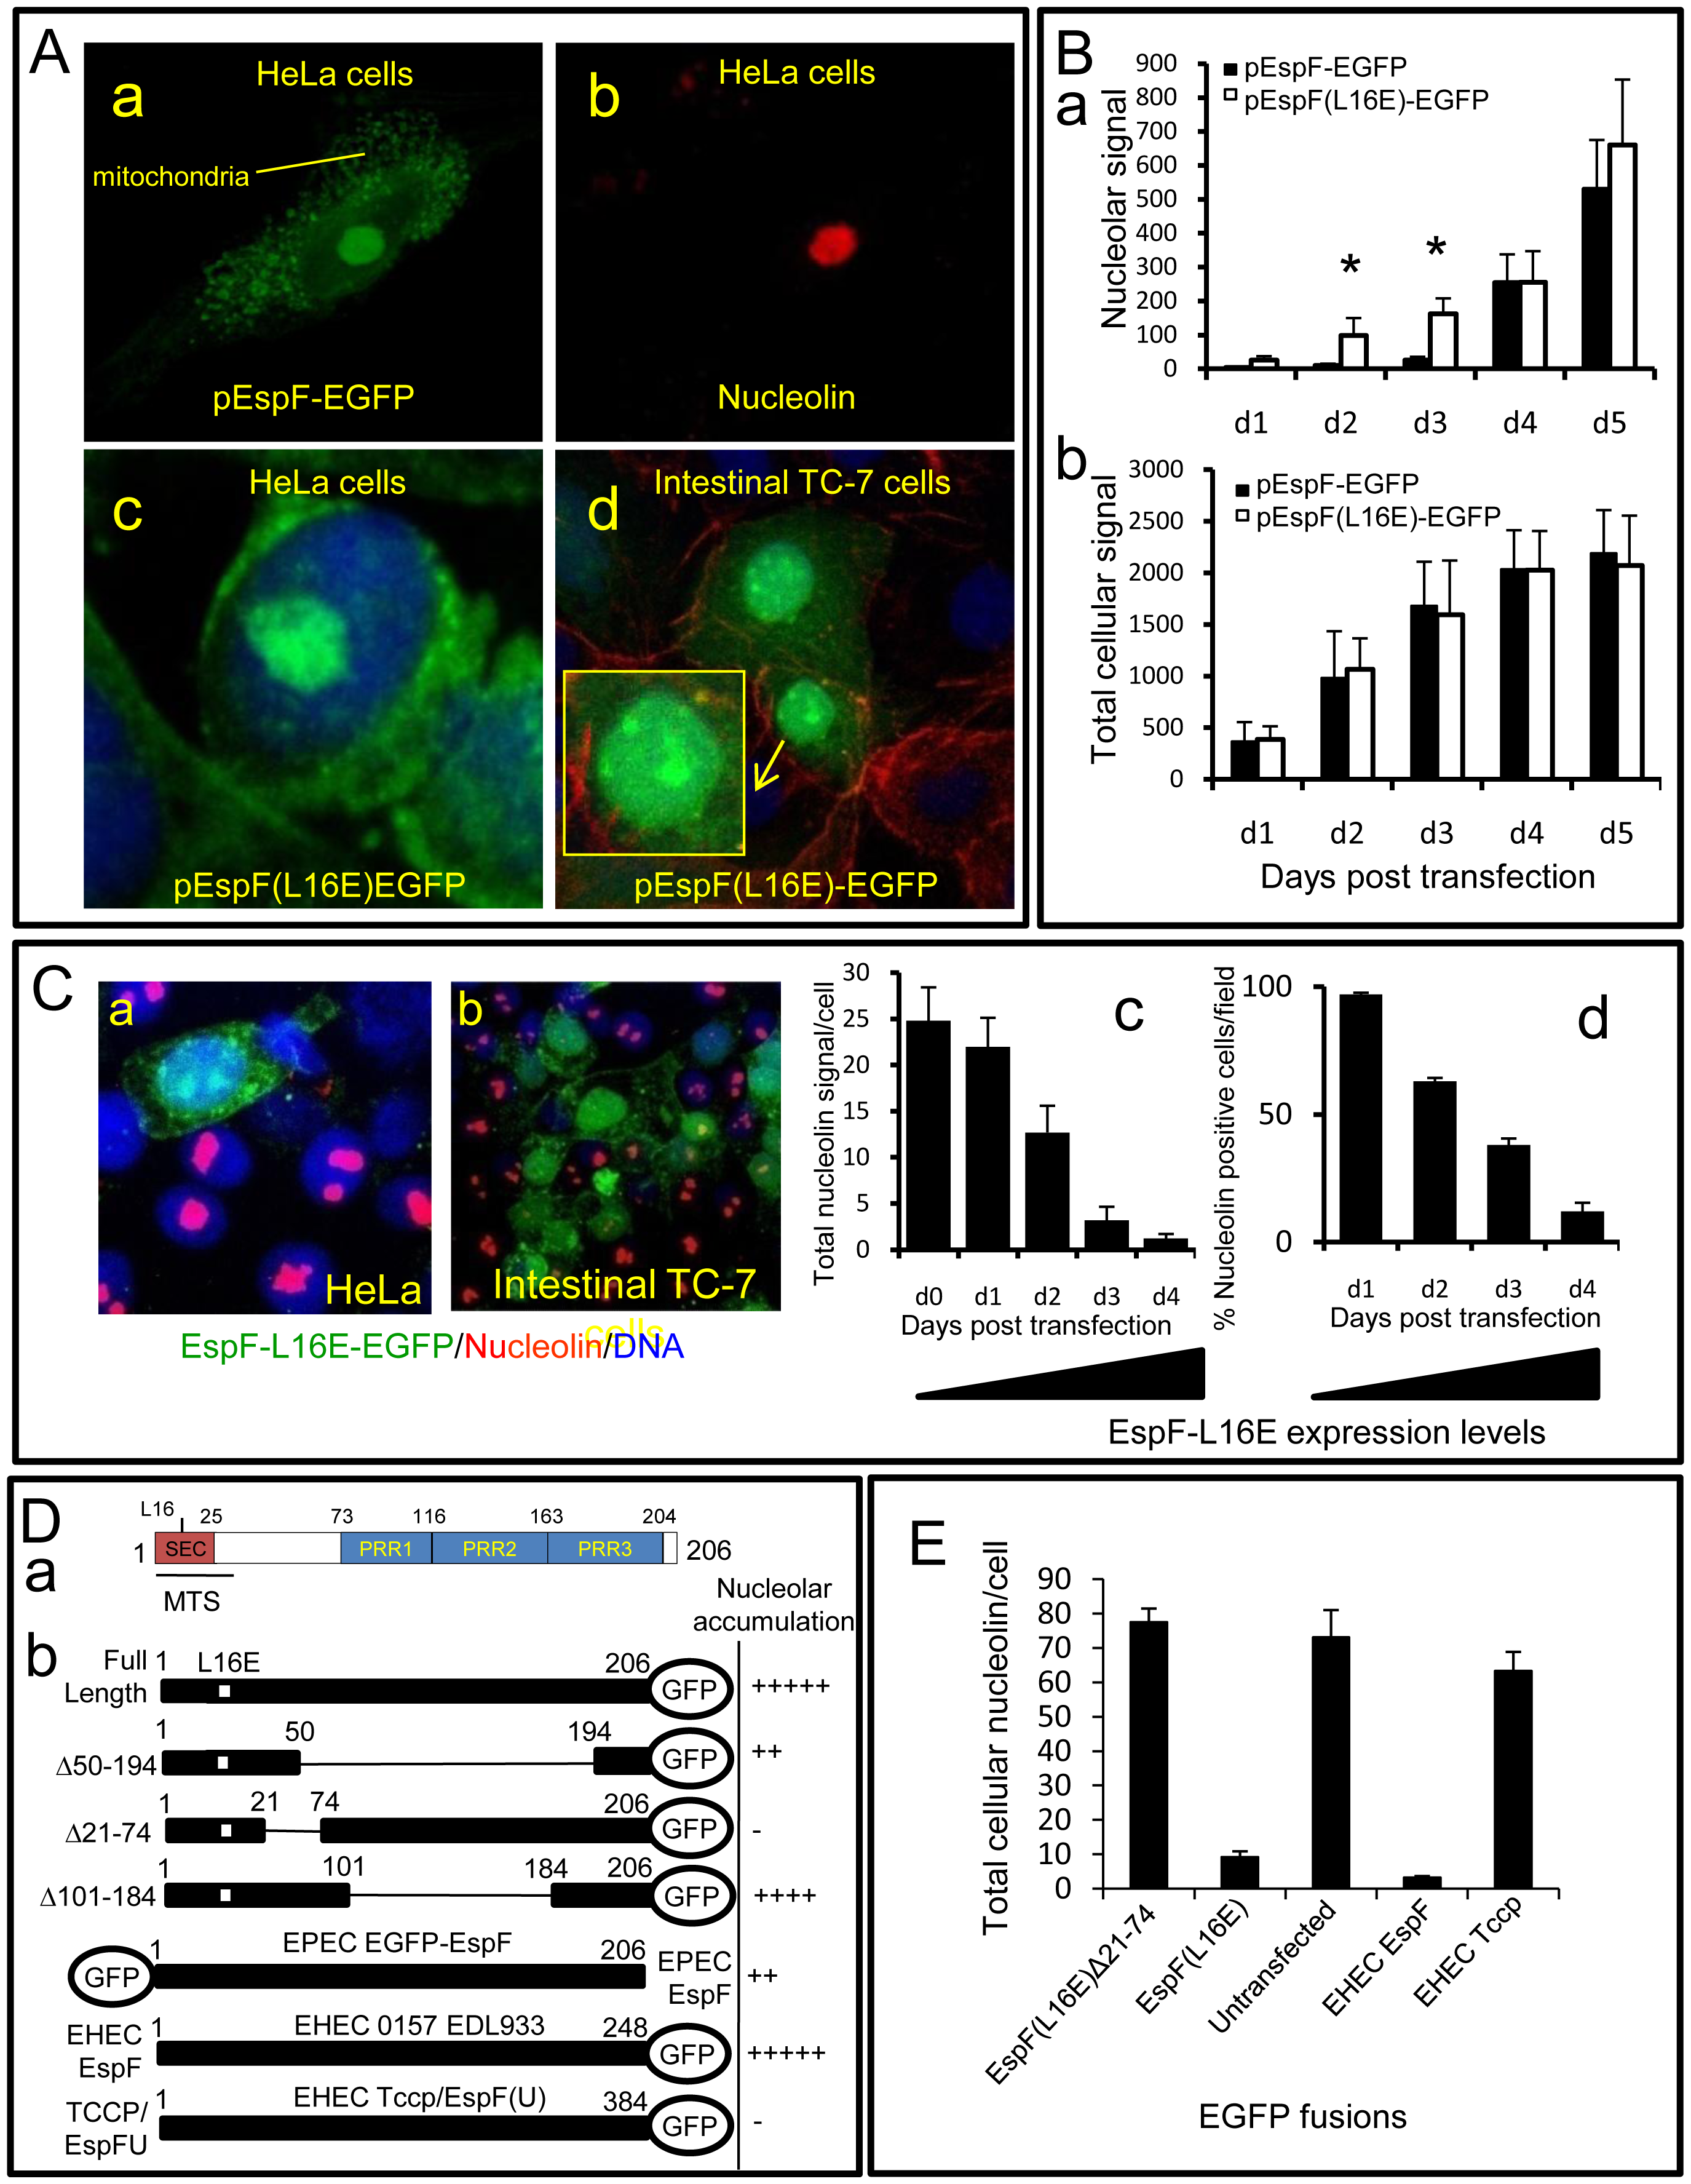 The N-terminal domain of EspF mediates nucleolar targeting and loss of nucleolin.